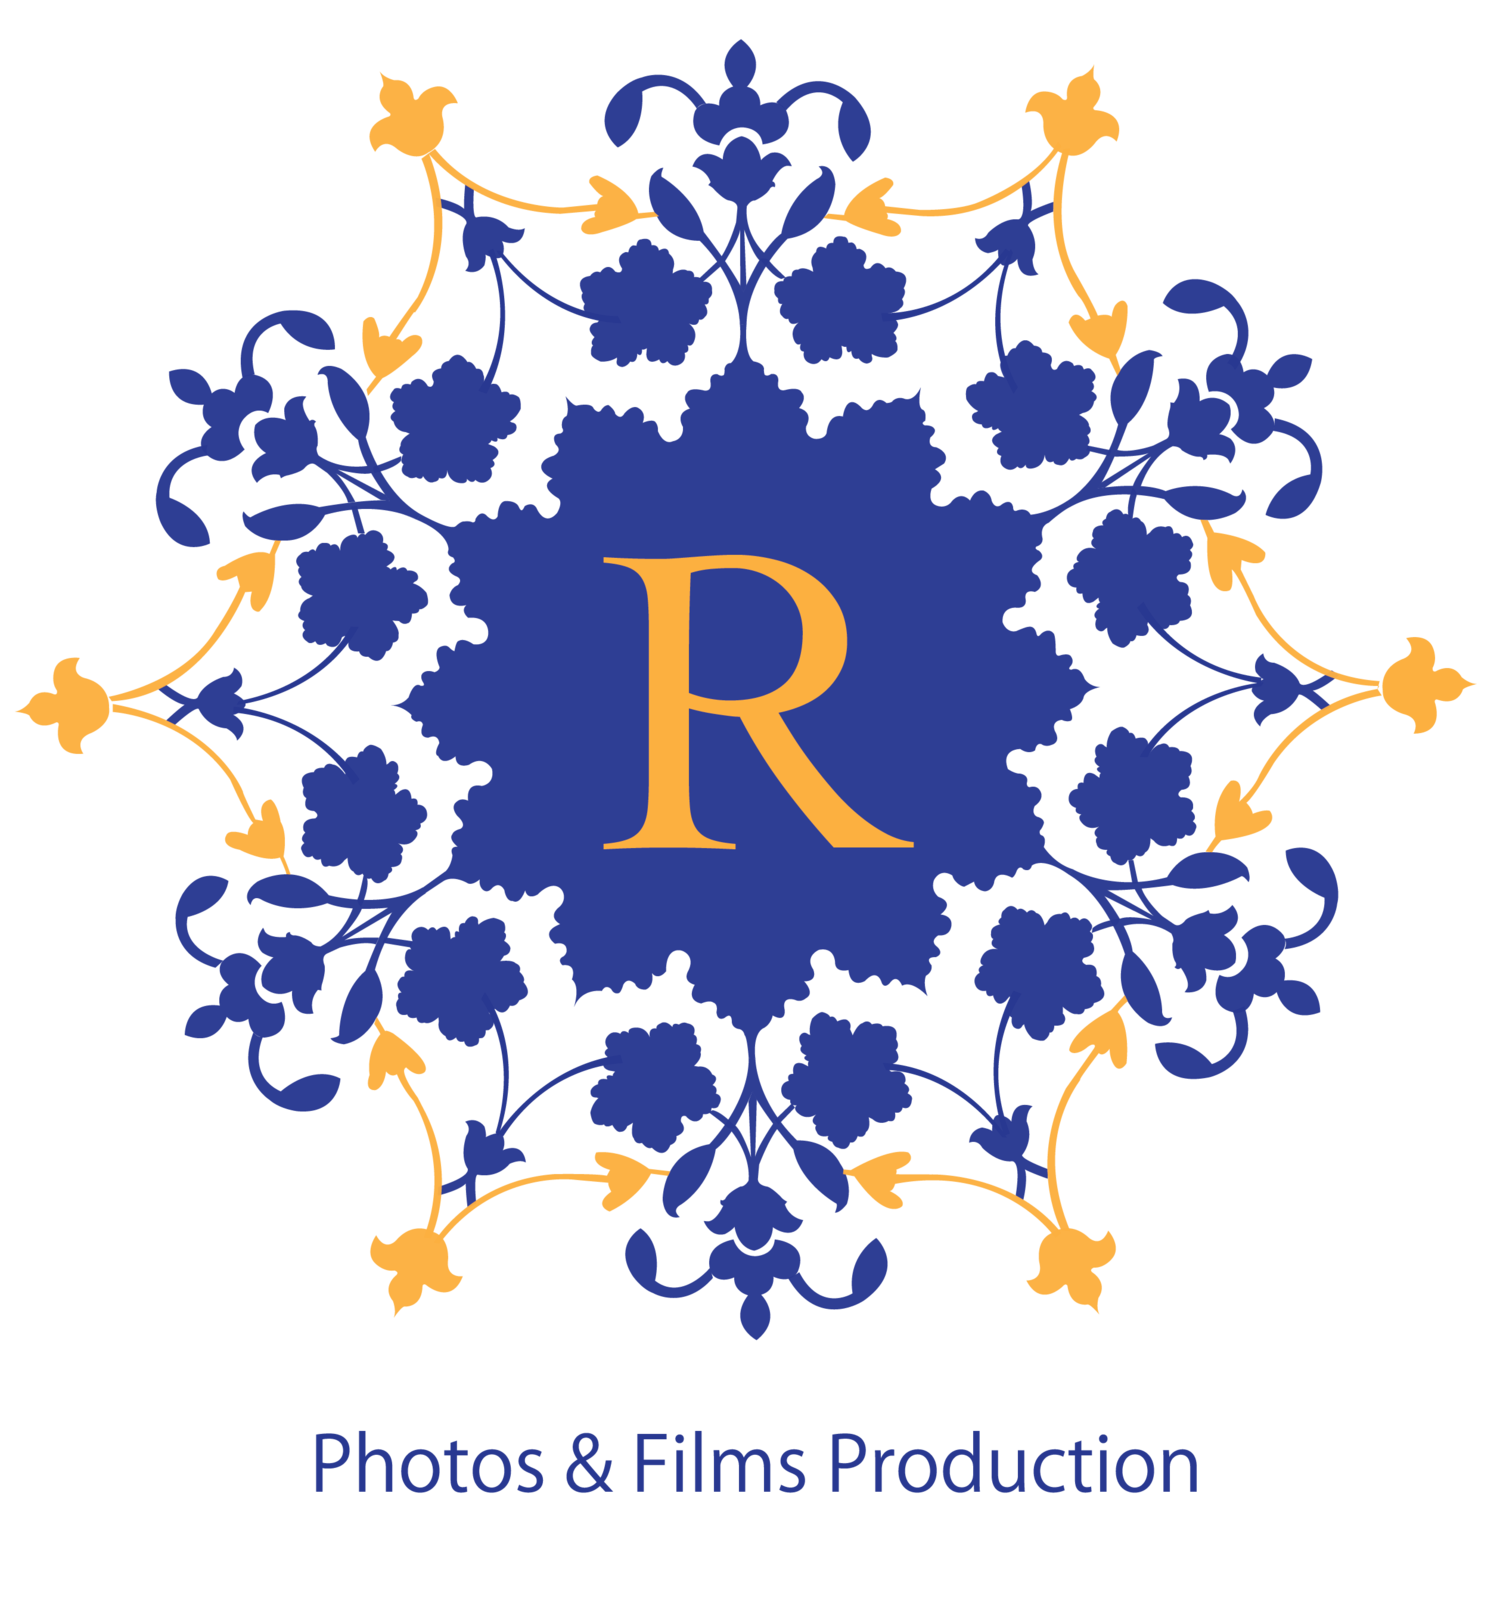 Royale Frames | Mumbai based professional photography & videography services